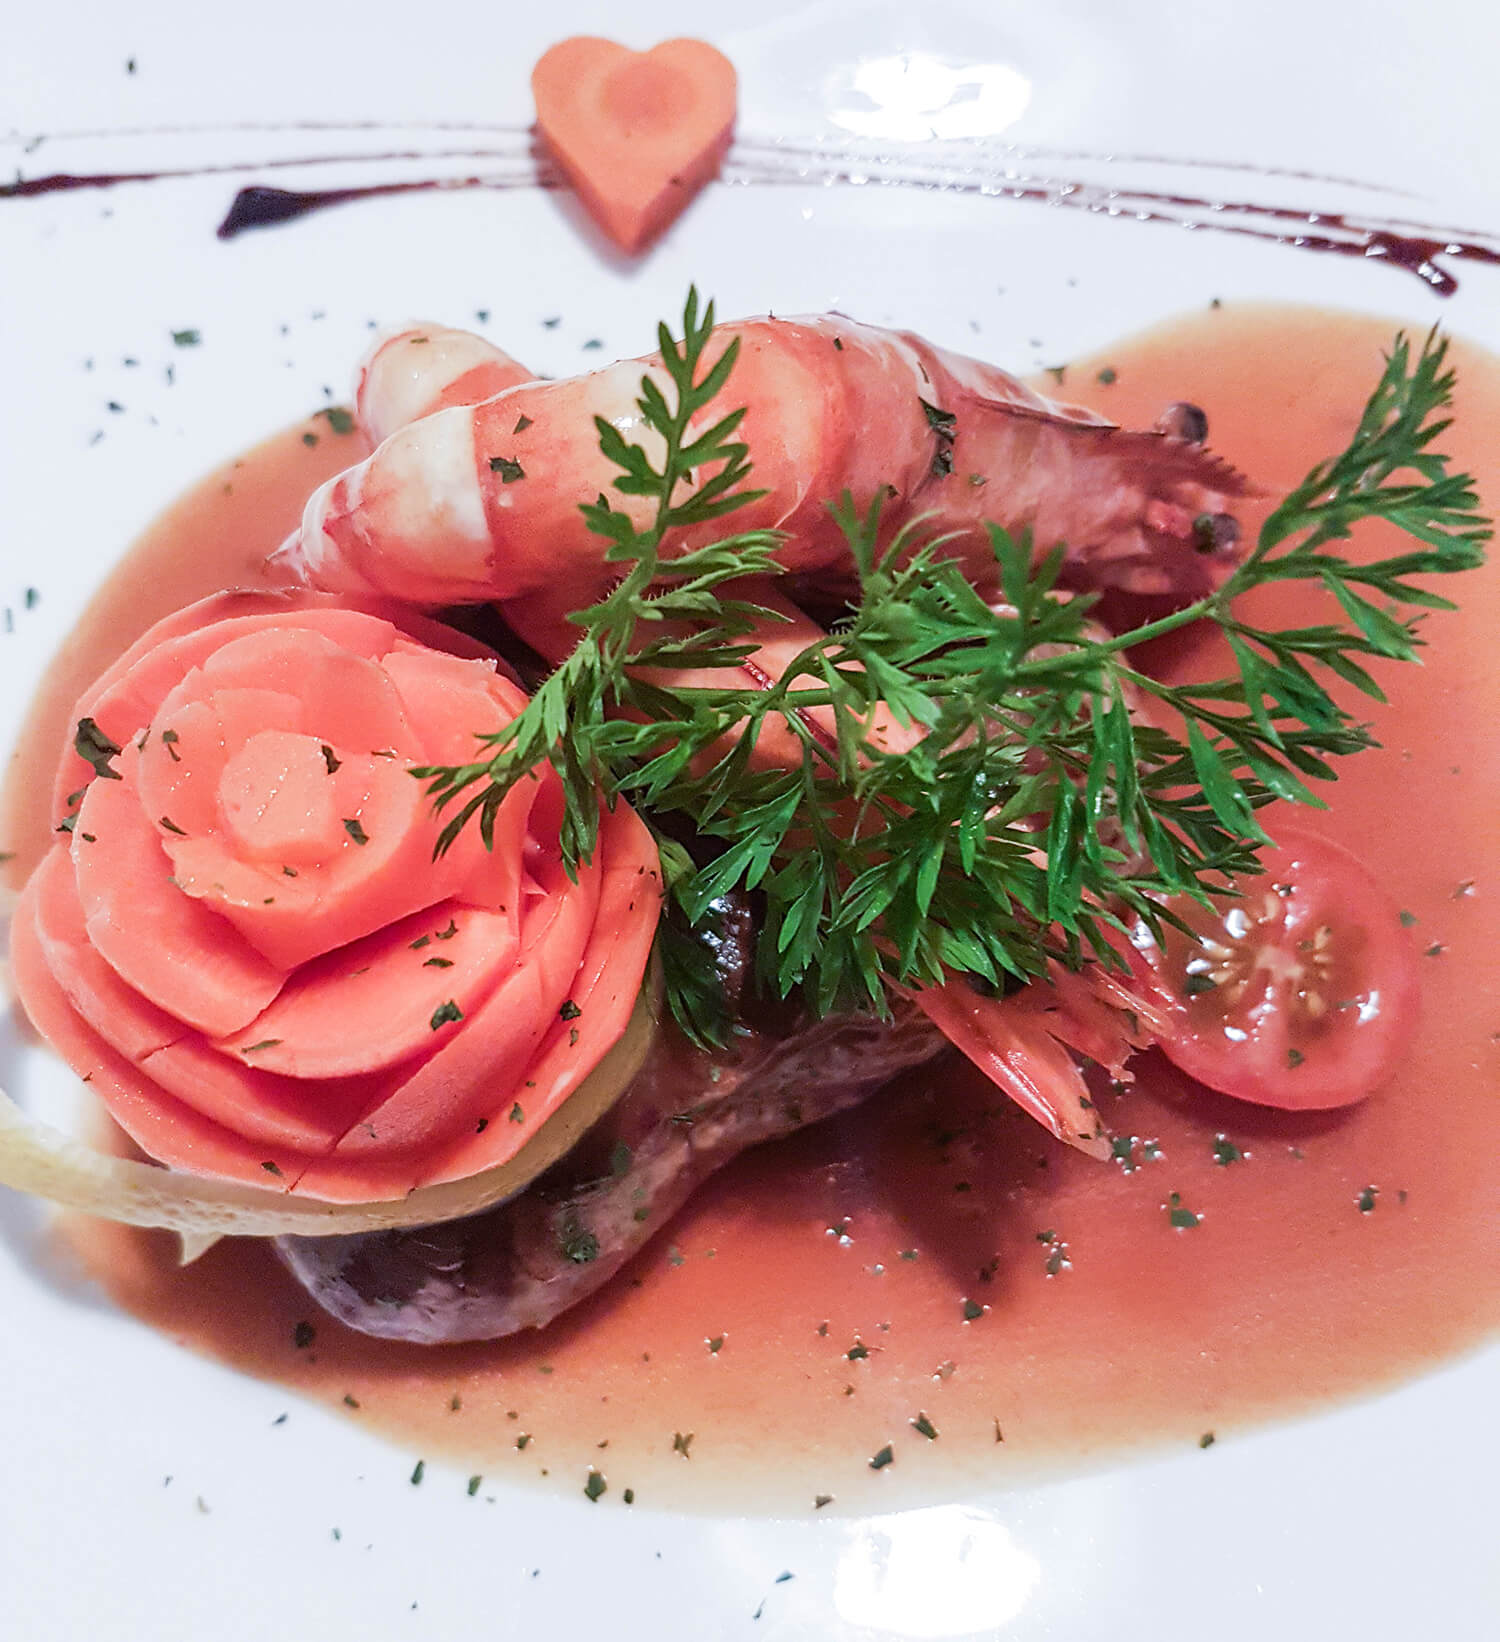 Kationette-lifestyleblogger-nrw-Food-Restaurant-tips-for-Funchal-on-Madeira-Island